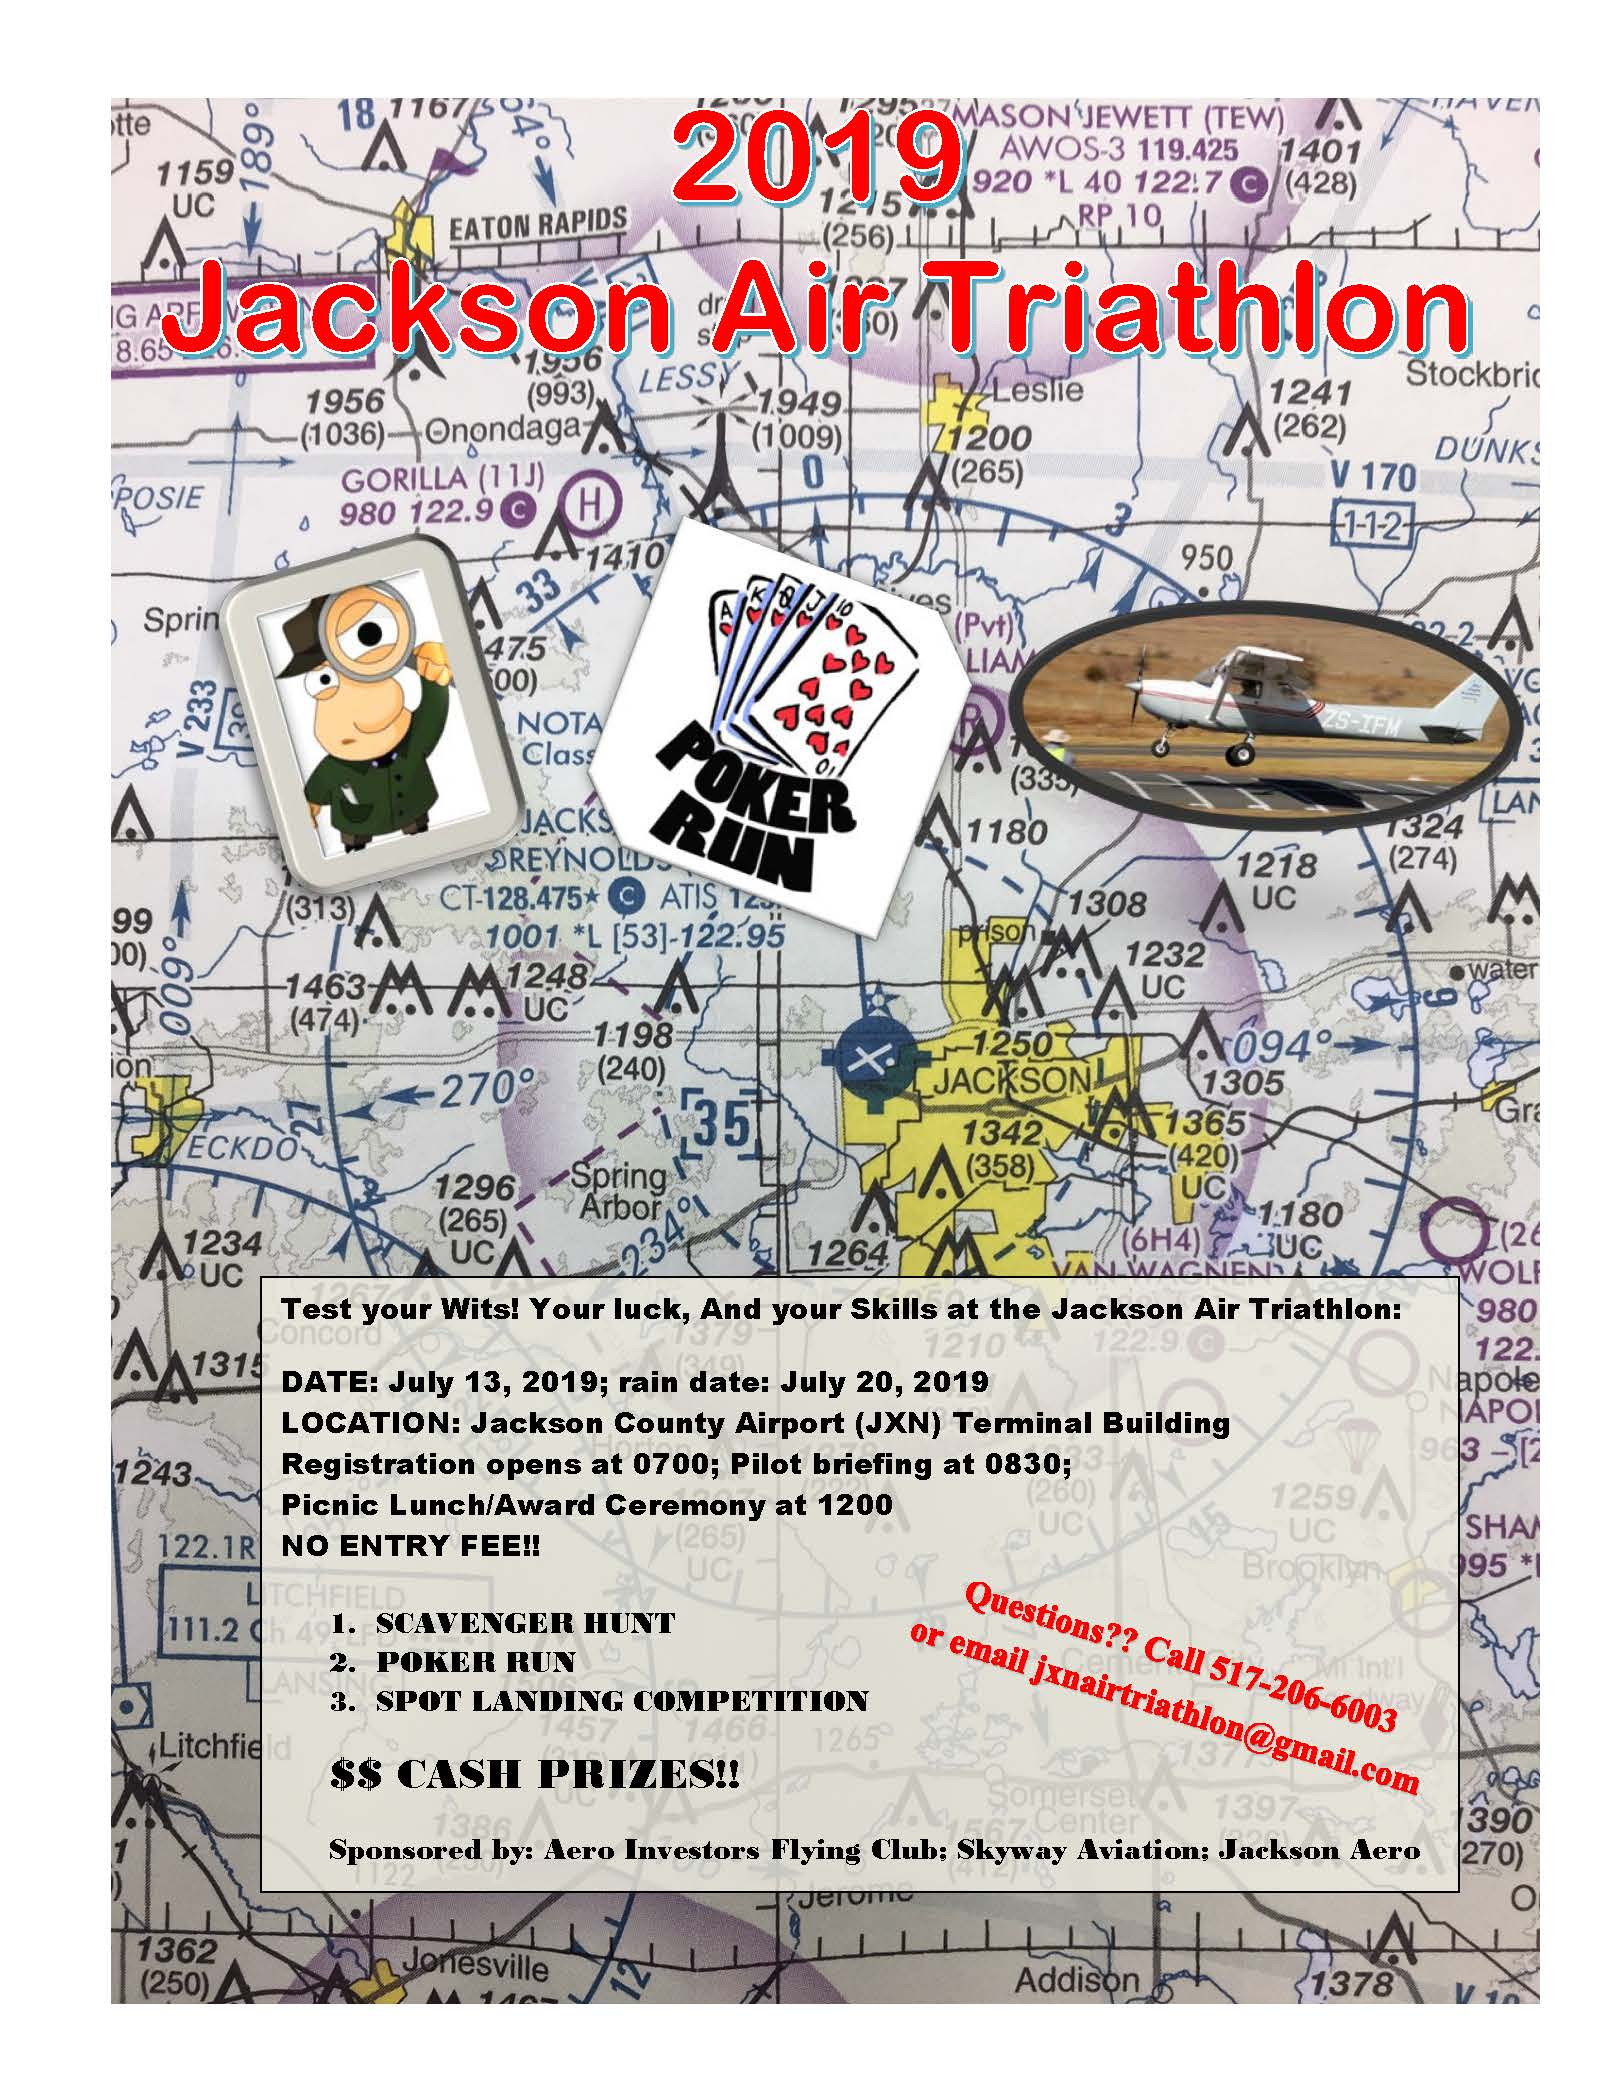 Jackson Air Triathlon 2019